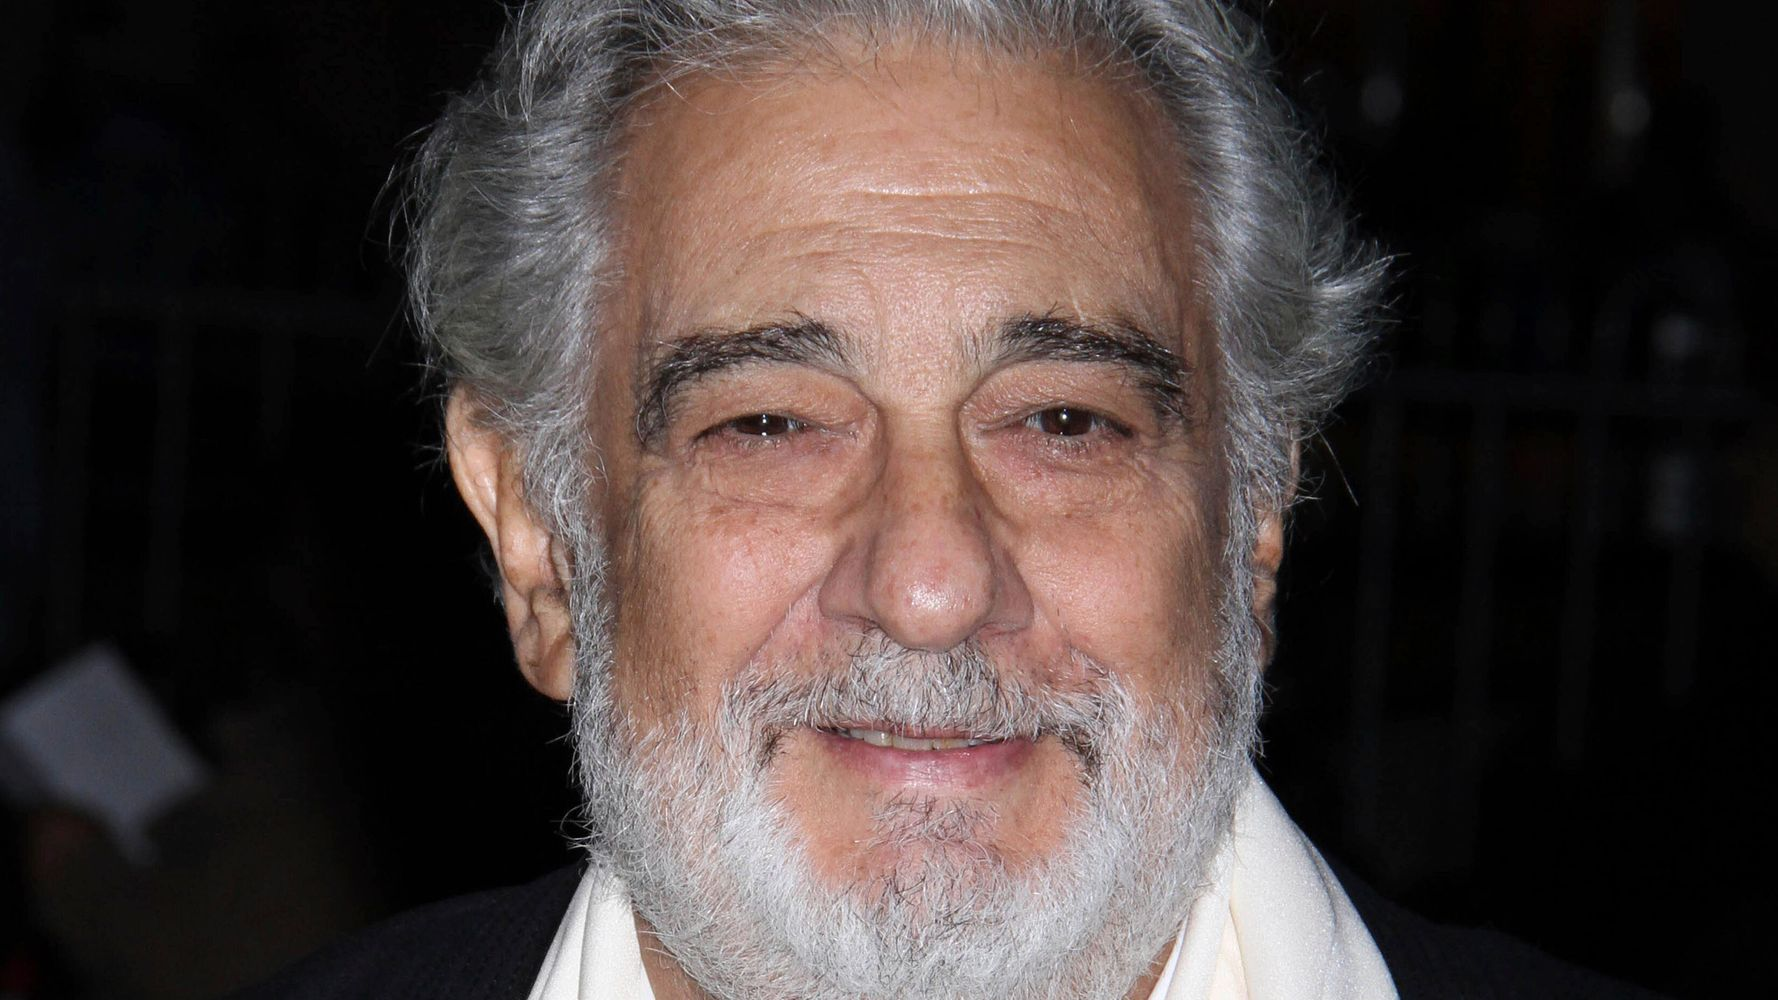 Placido Domingo Abused His Power And Sexually Harassed Women, Investigation Finds